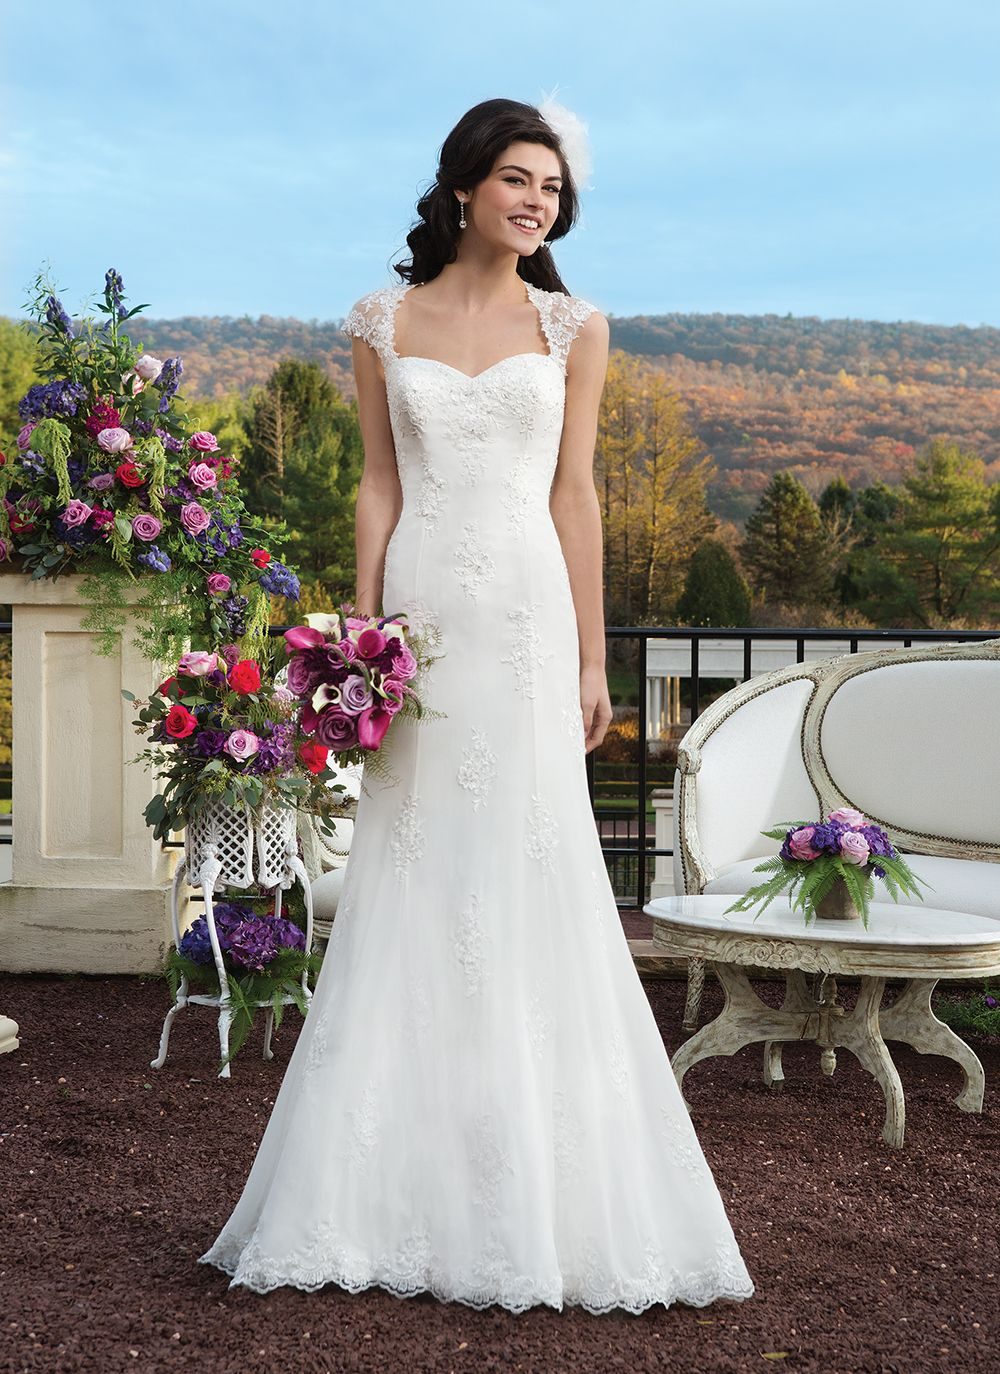 Sincerity brautkleid style 3802 Chiffon and embroidered beaded lace fit and flare gown which features a  Queen Anne neckline and delicate floating appliques throughout the  skirt. The gown is finished with an illusion back, chiffon covered  buttons over the back zipper and a chapel length train.